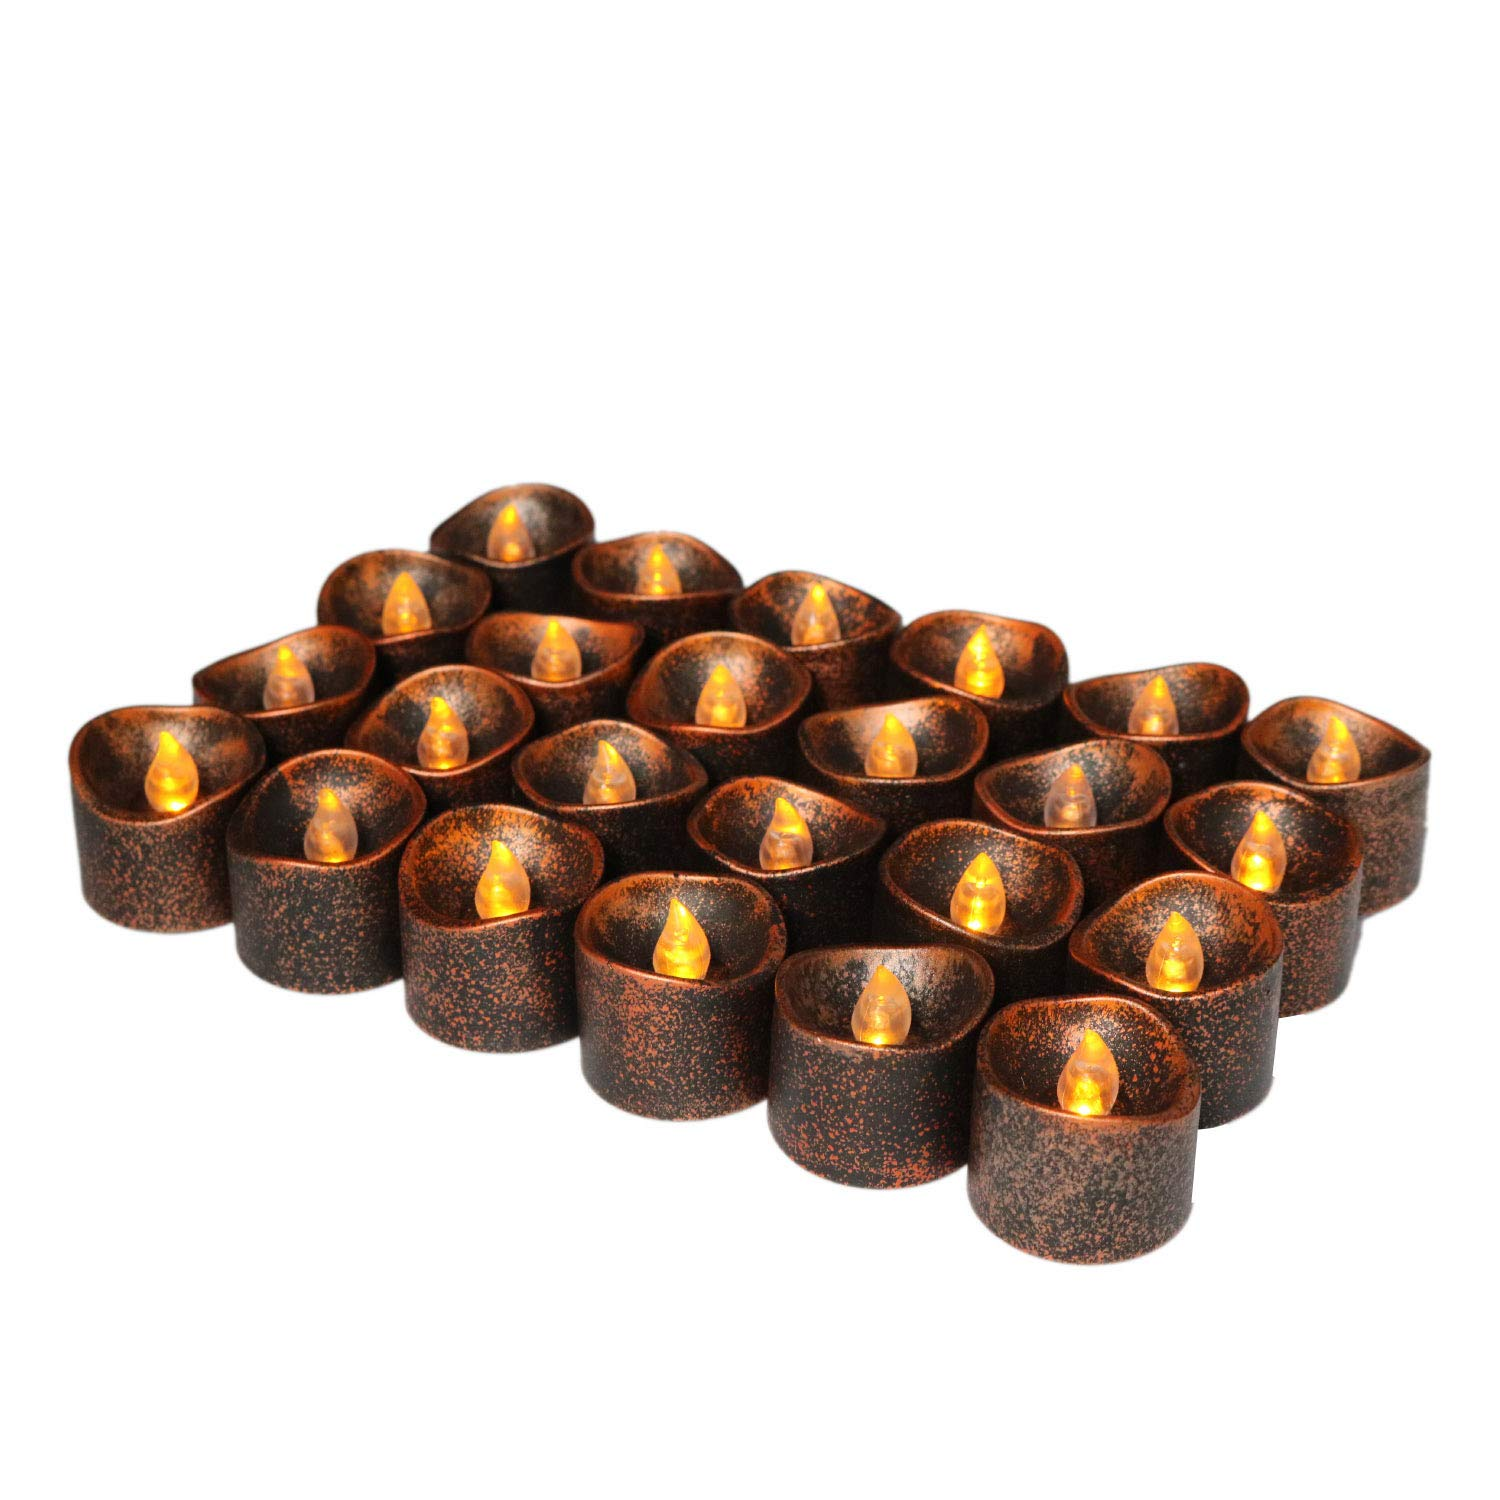 Cozeyat Black Tea Lights Battery Operated Flameless Led Candles Halloween Votives for Window Holiday Tree Decorations 24pcs (24 Wave Open)